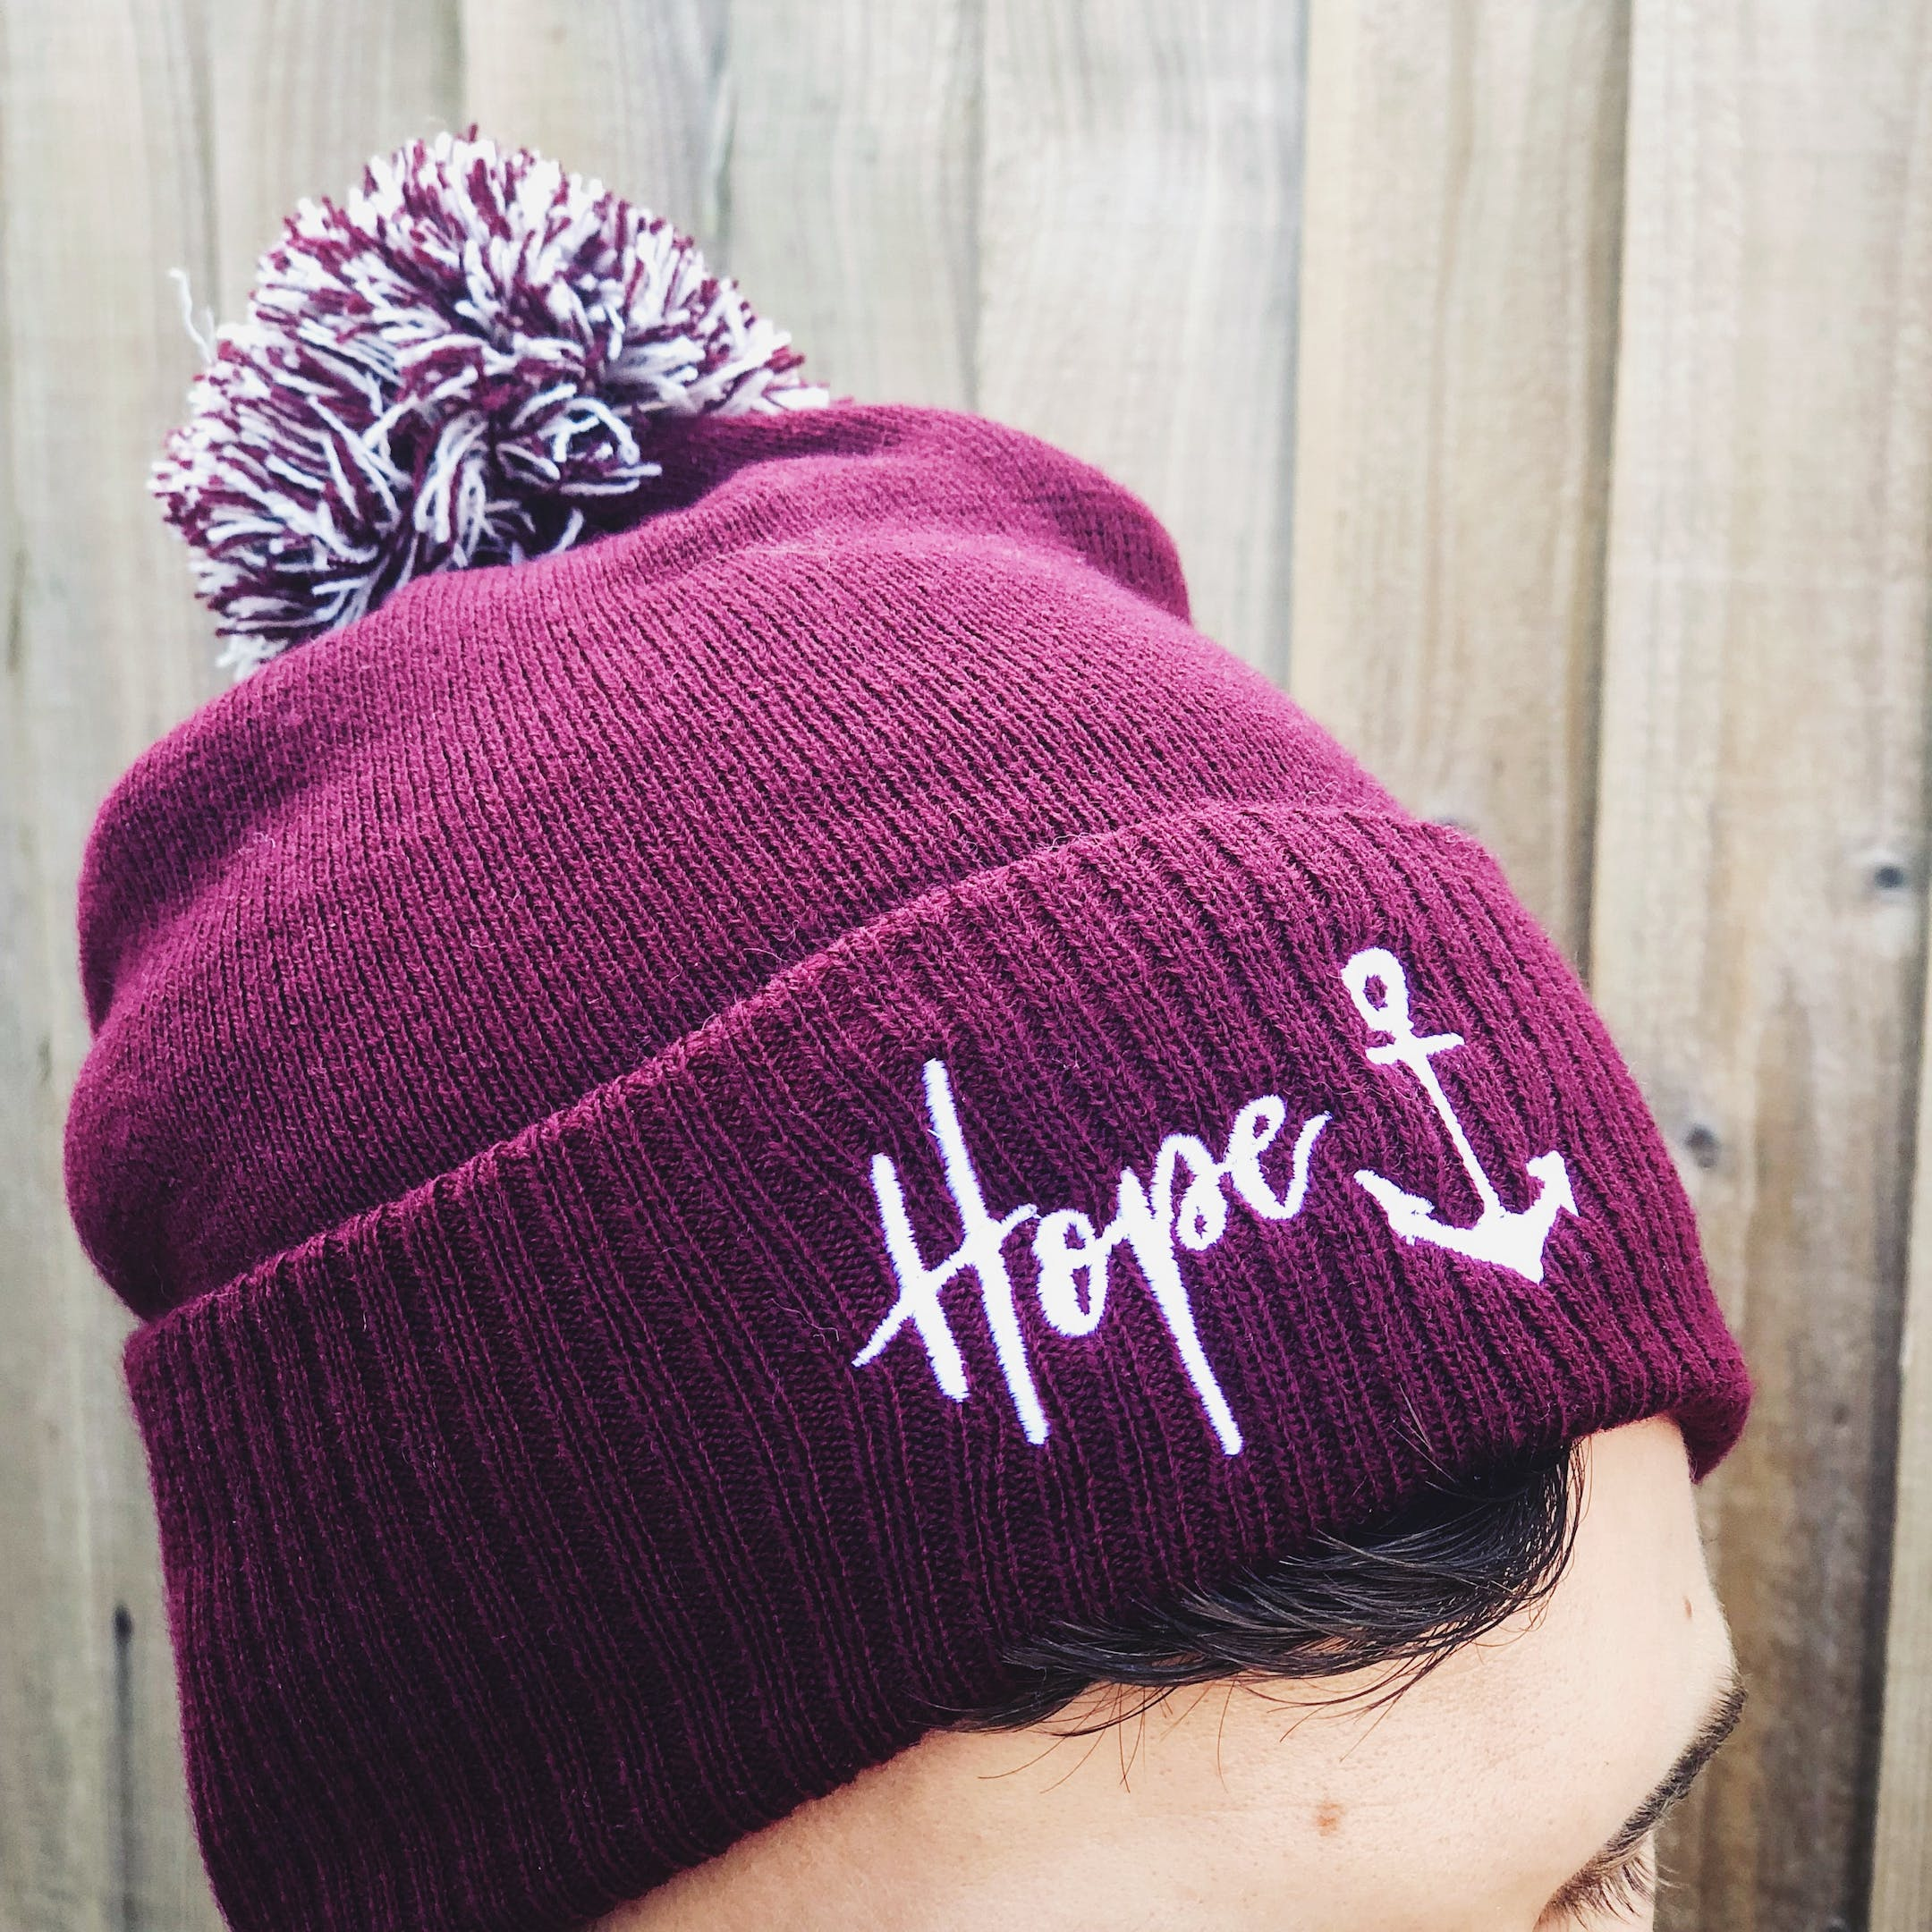 Hope Anchor Beanie Hat - Izzy and Pop